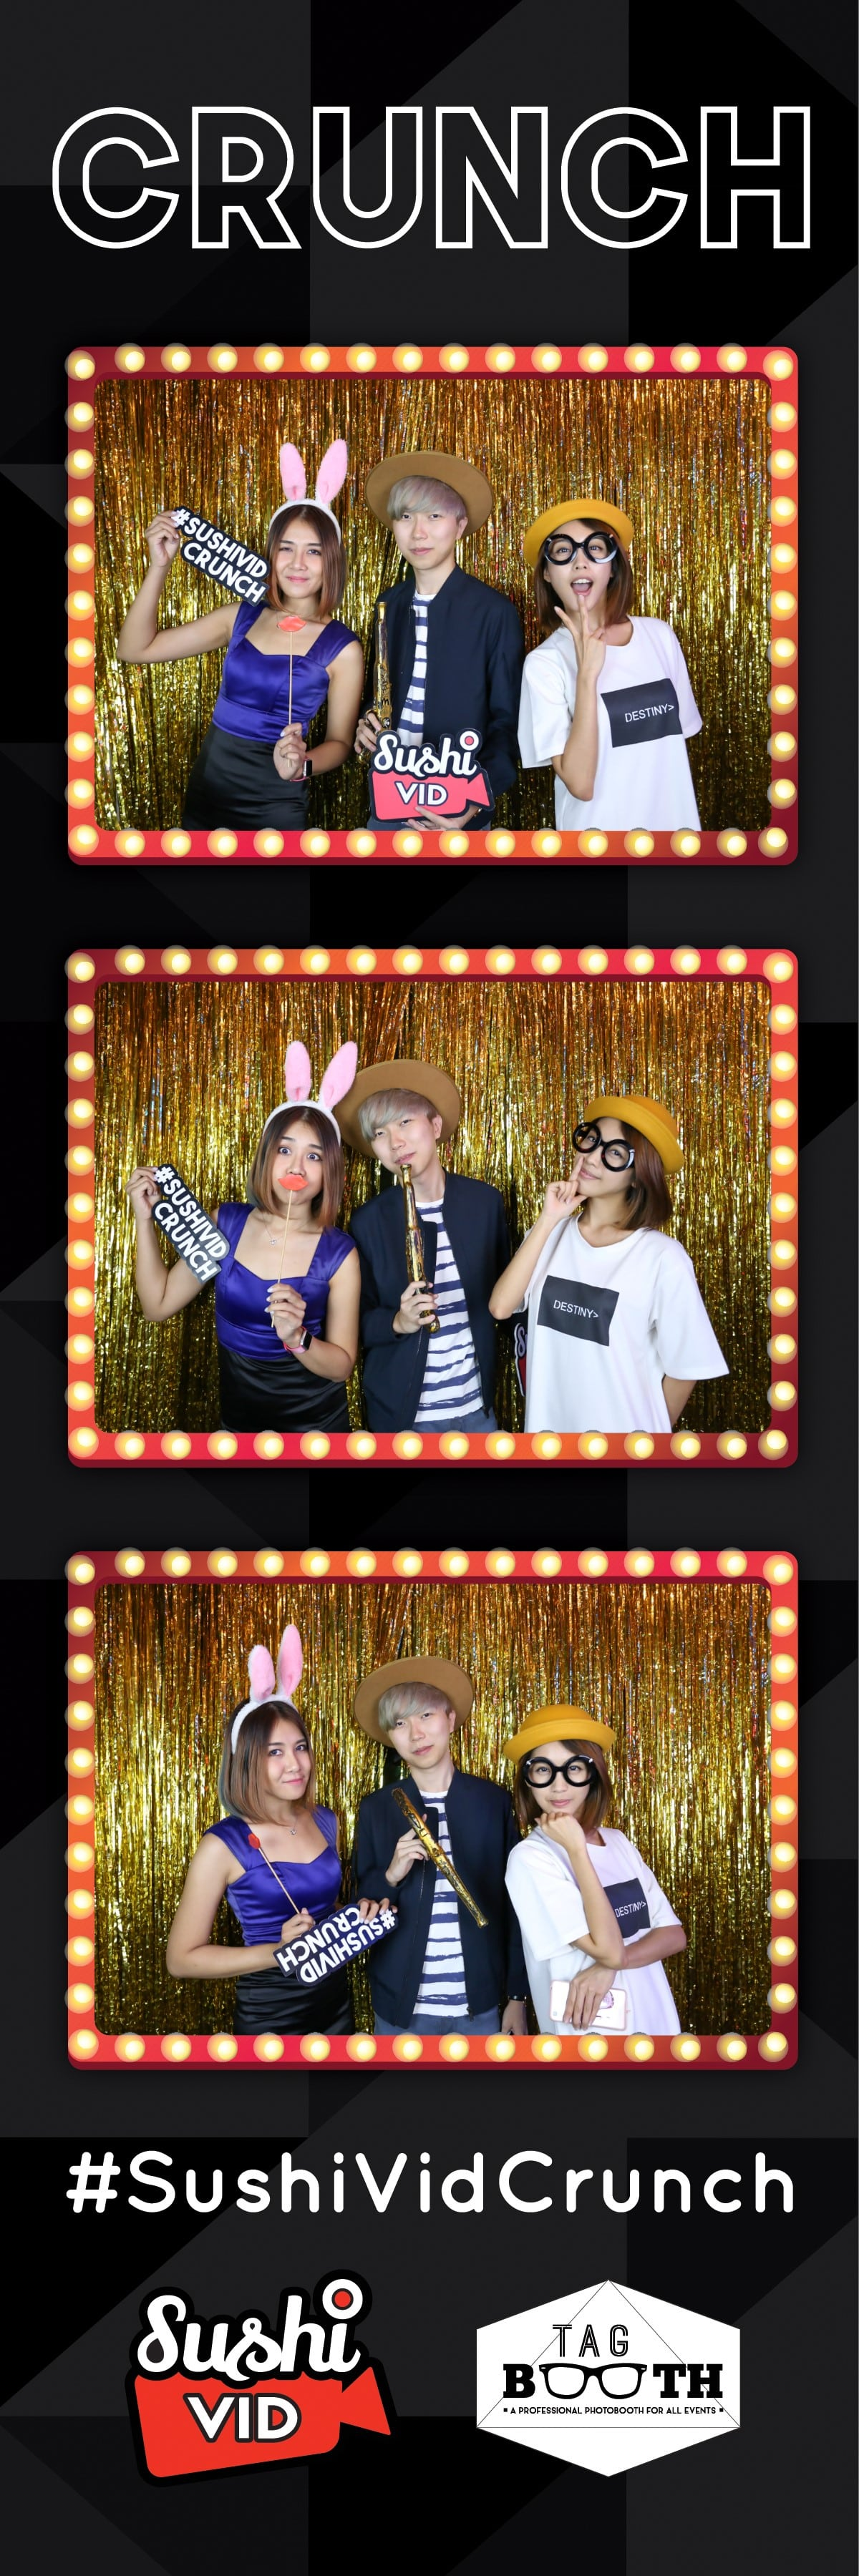 Sushivid+crunch+tagbooth1+14